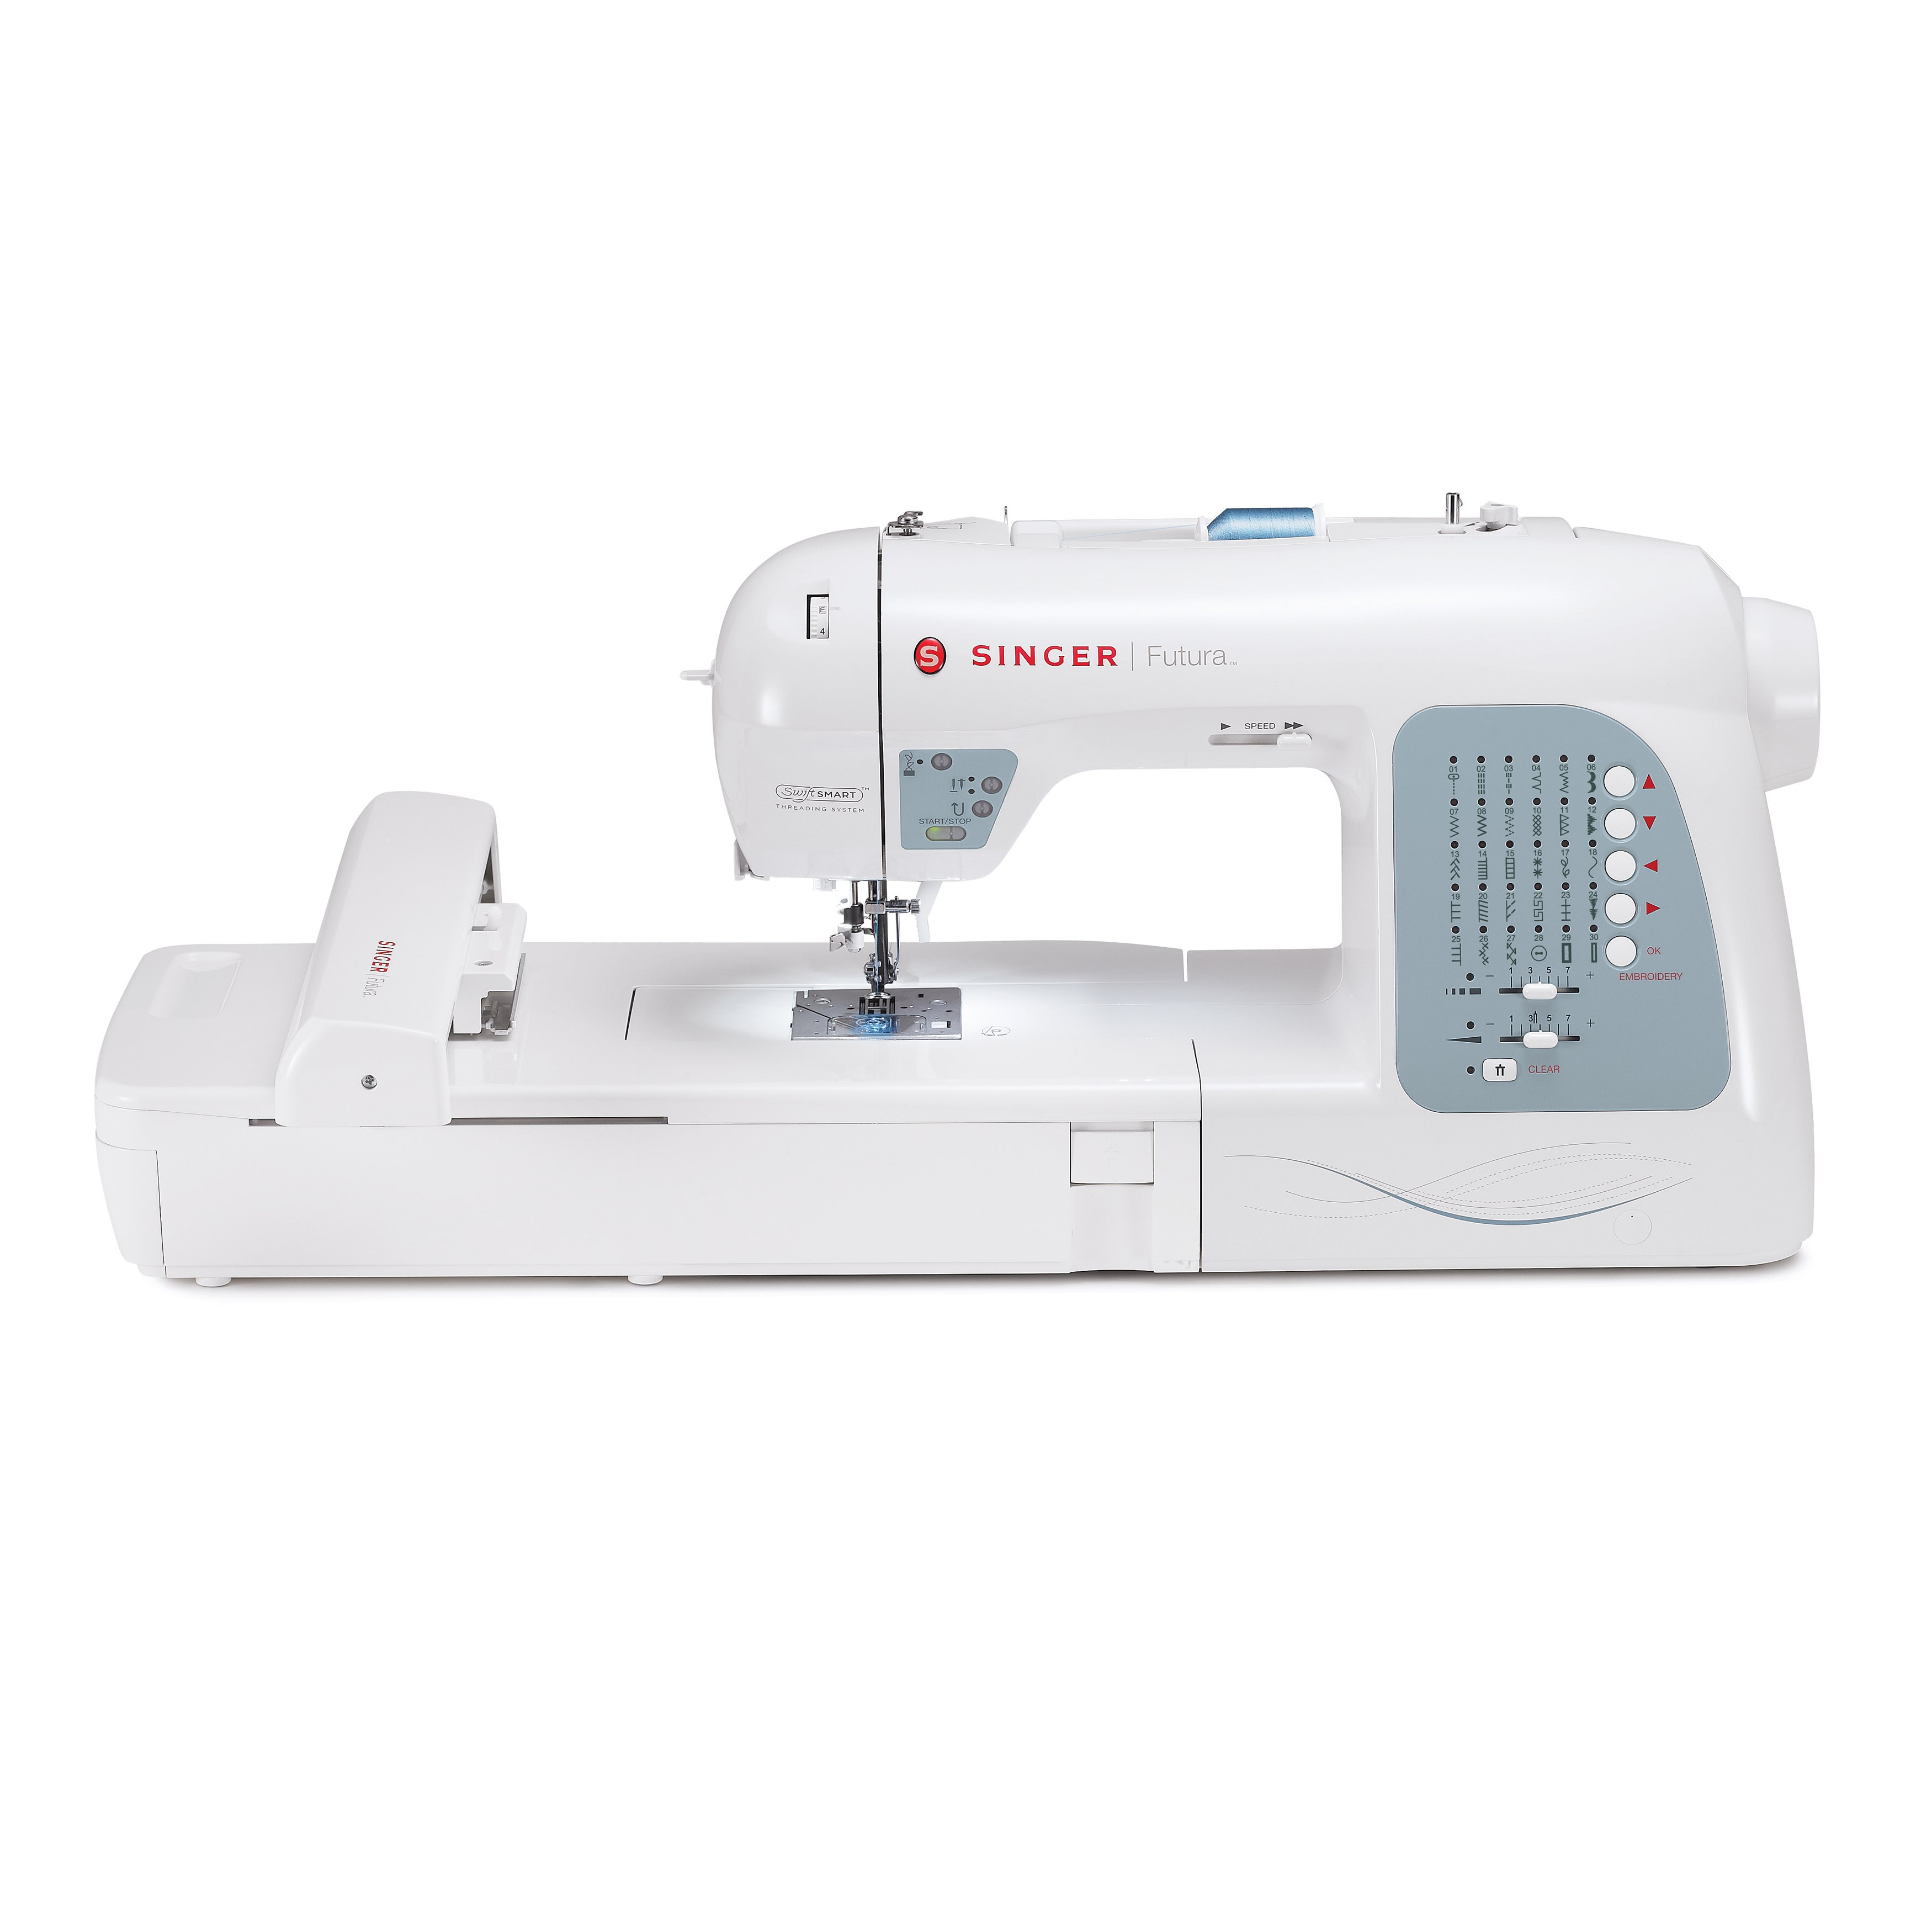 SINGER SEWING CO. Futura XL-400 Embroidery and Sewing Mac...